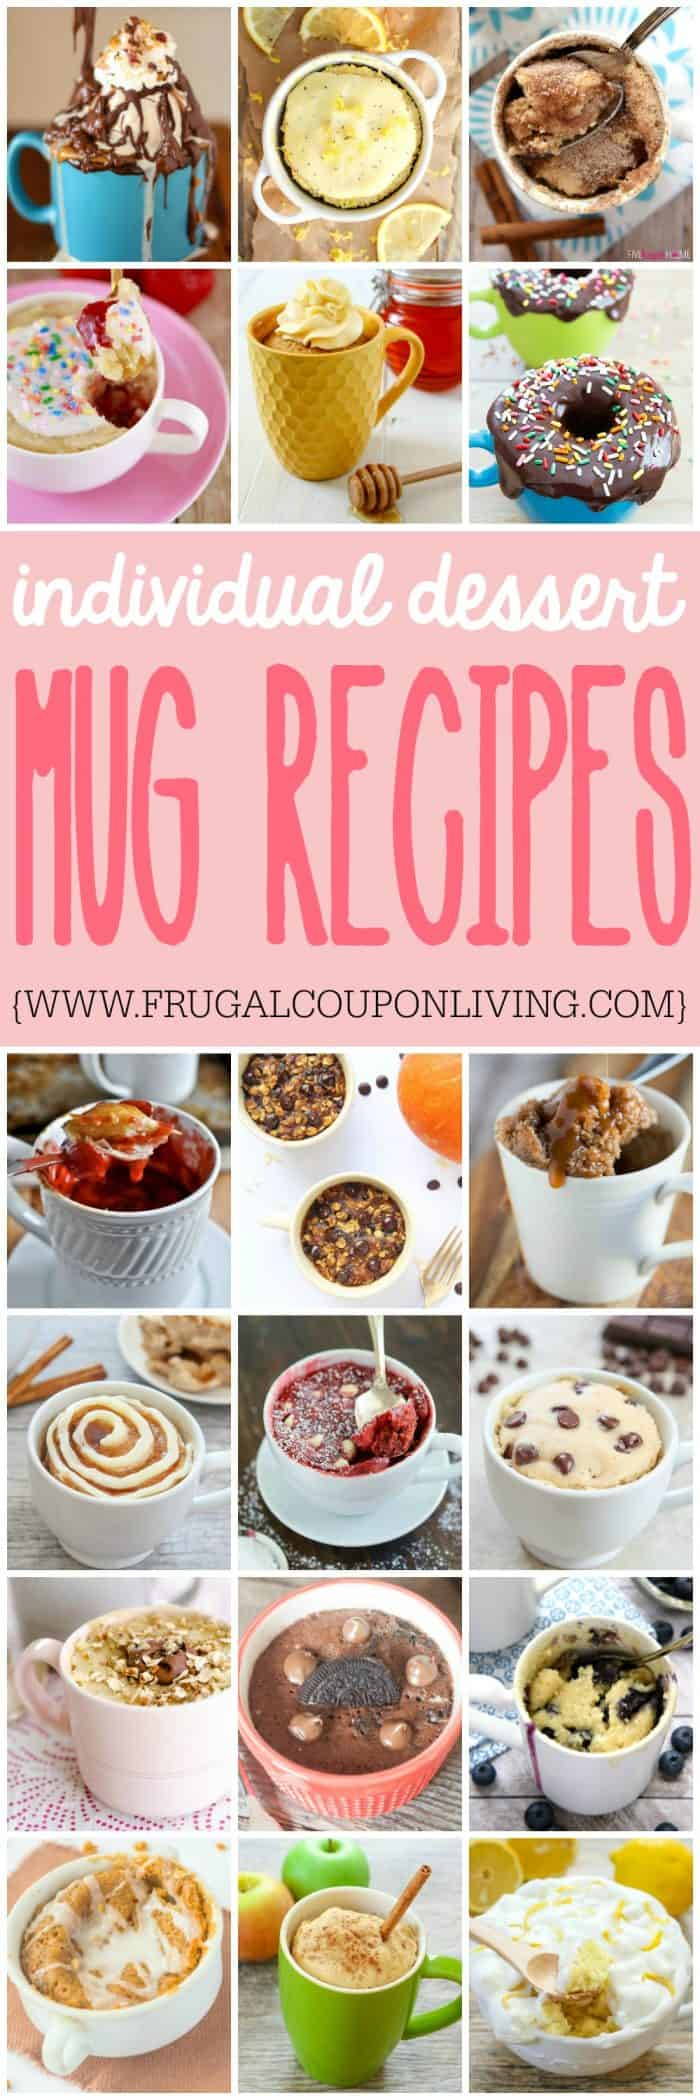 dessert-mug-recipes-frugal-coupon-living-long